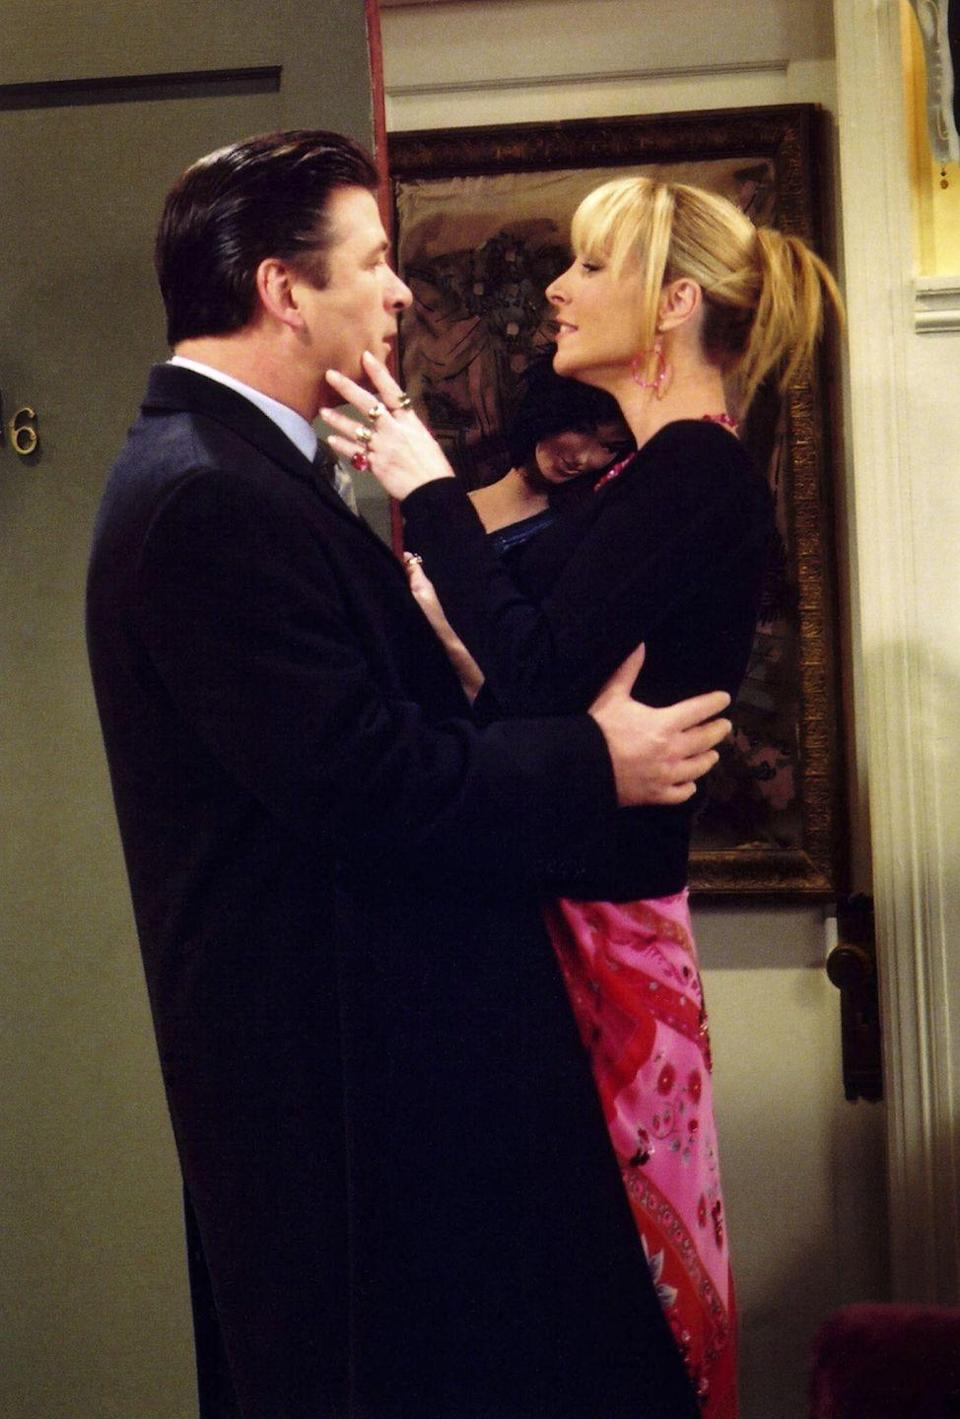 "<p>Alec Baldwin appeared in two episodes of the series as Parker, Pheobe's overly enthusiastic boyfriend <a href=""https://www.youtube.com/watch?v=0xFrBfeKJoo"" rel=""nofollow noopener"" target=""_blank"" data-ylk=""slk:whose fascination with Massapequa"" class=""link rapid-noclick-resp"">whose fascination with Massapequa</a> irritates everyone. </p>"